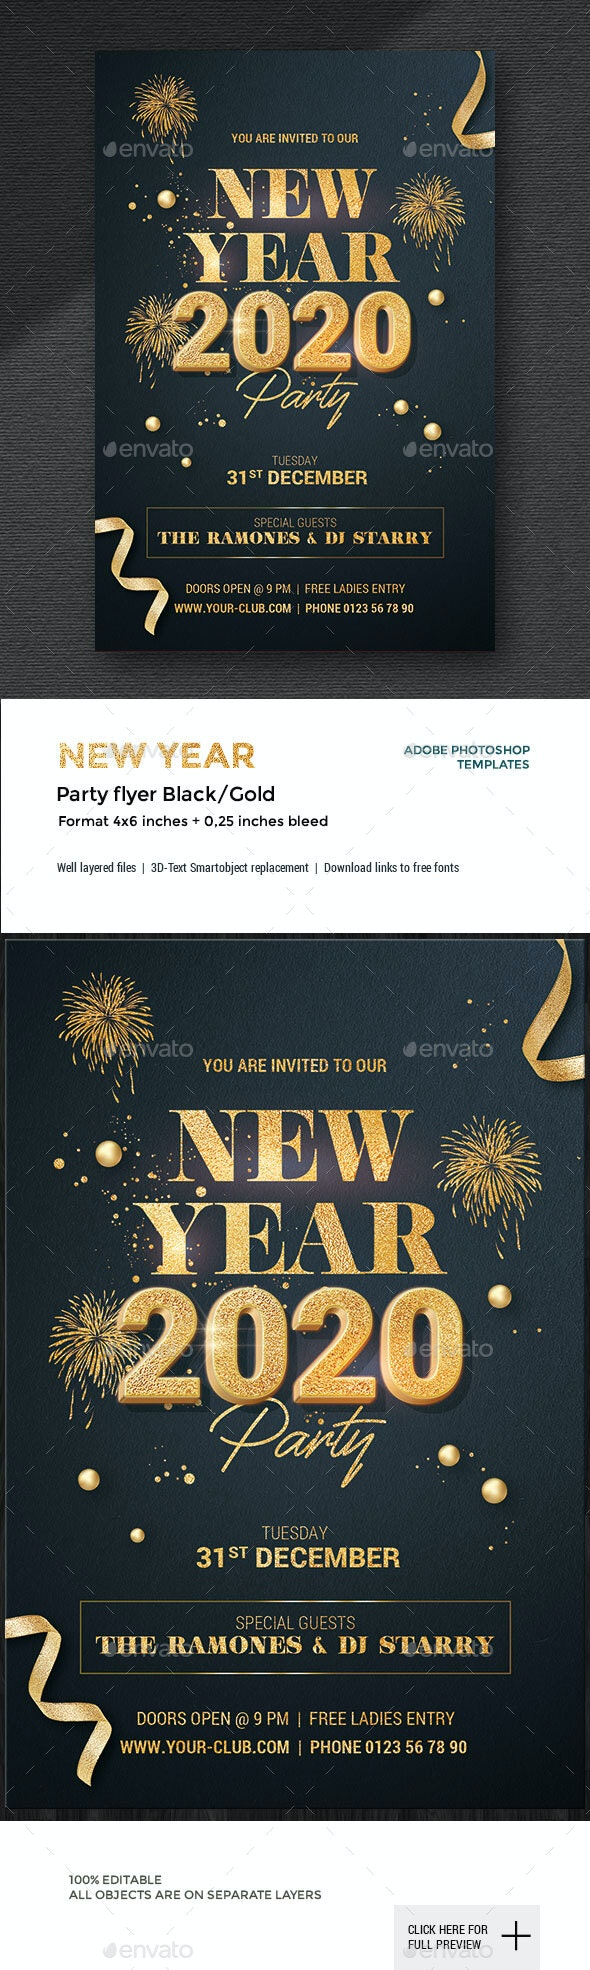 New Year Party Flyer - Black/Gold - Holidays Events